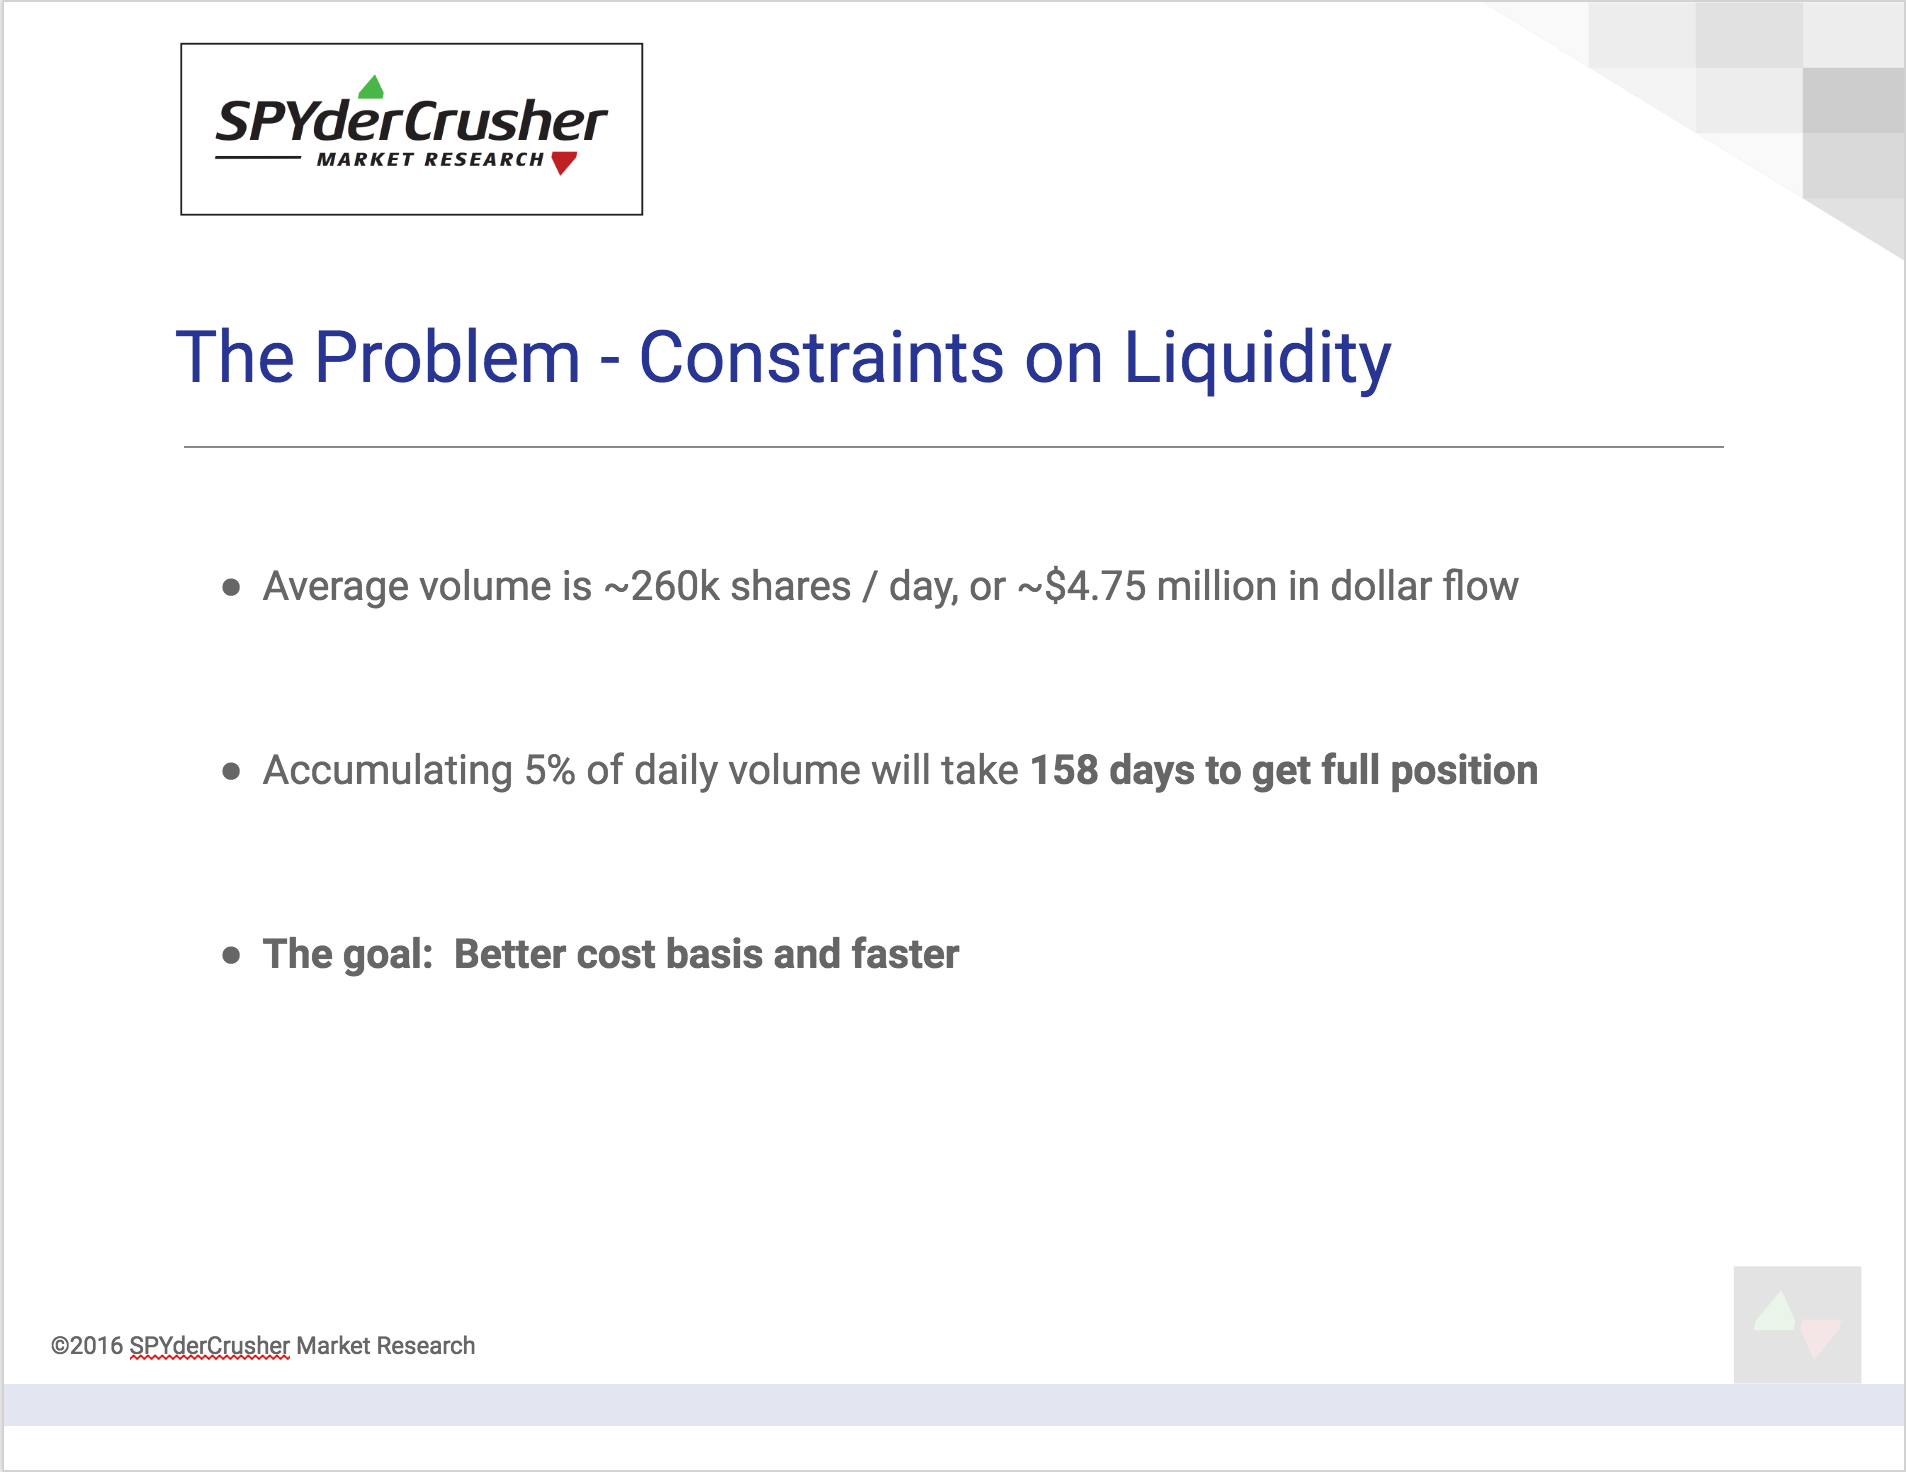 Costs vs. Timing vs. Liquidity